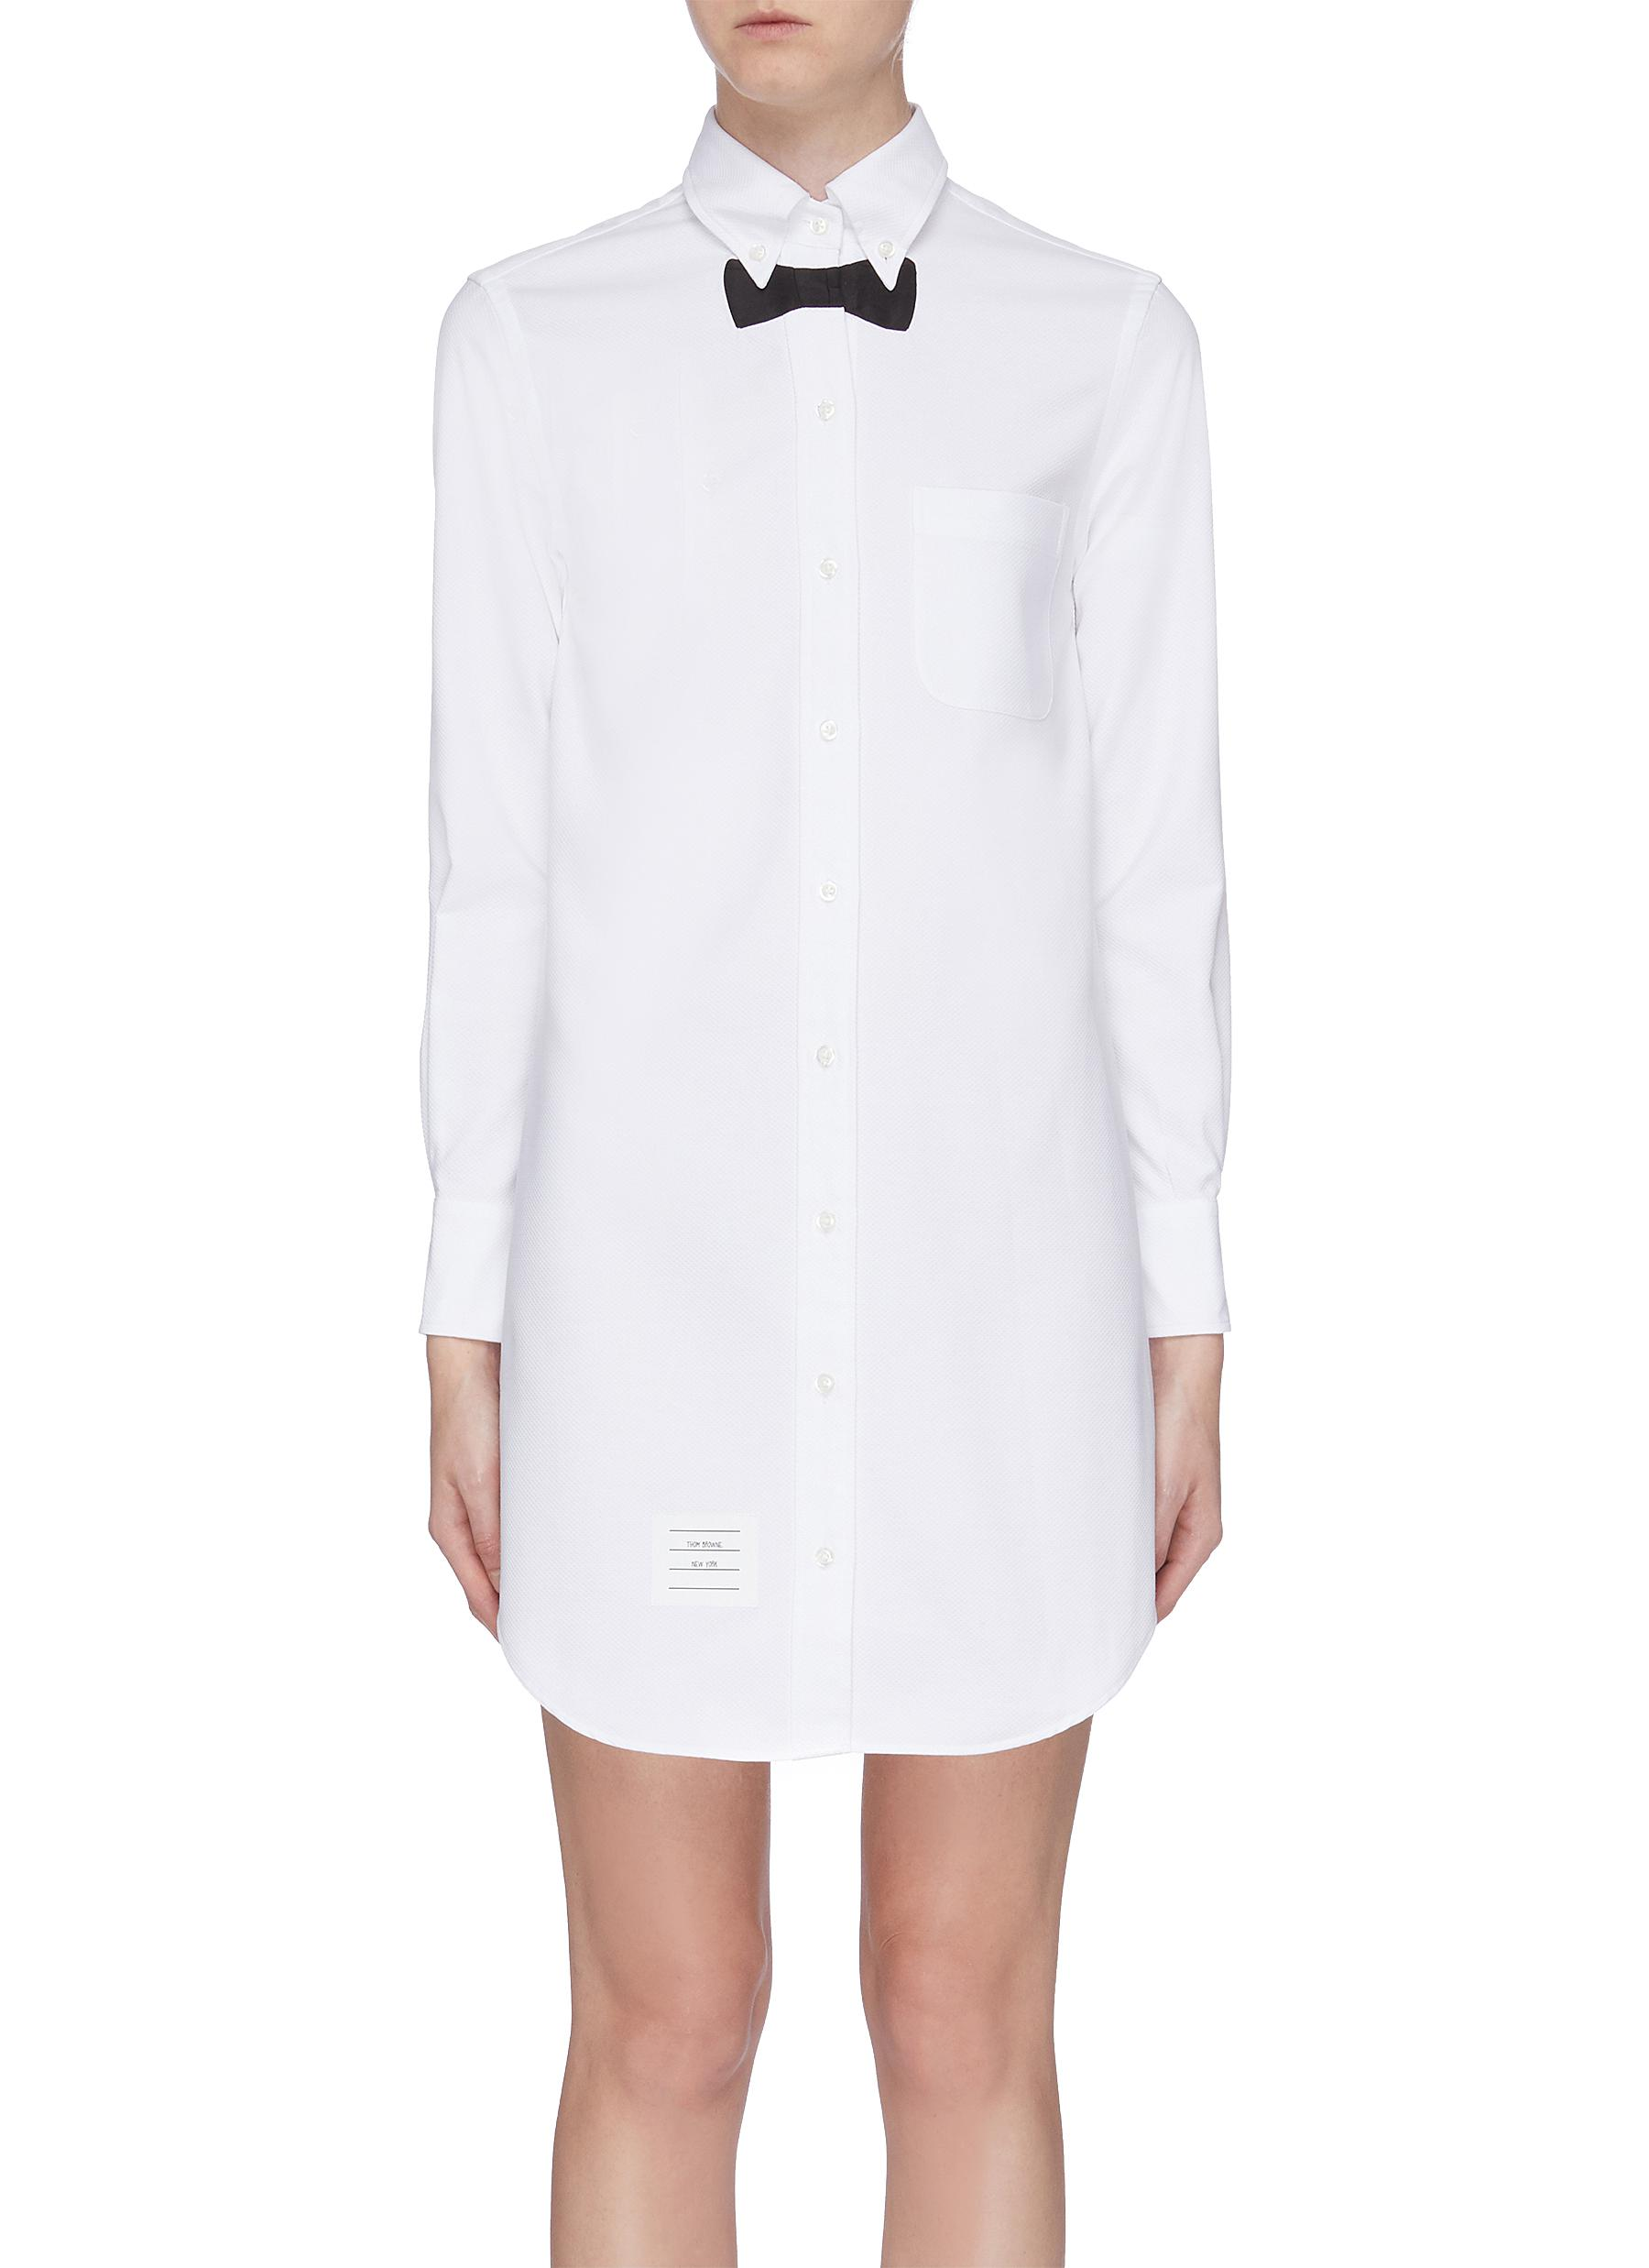 Trompe lail bow tie shirt dress by Thom Browne